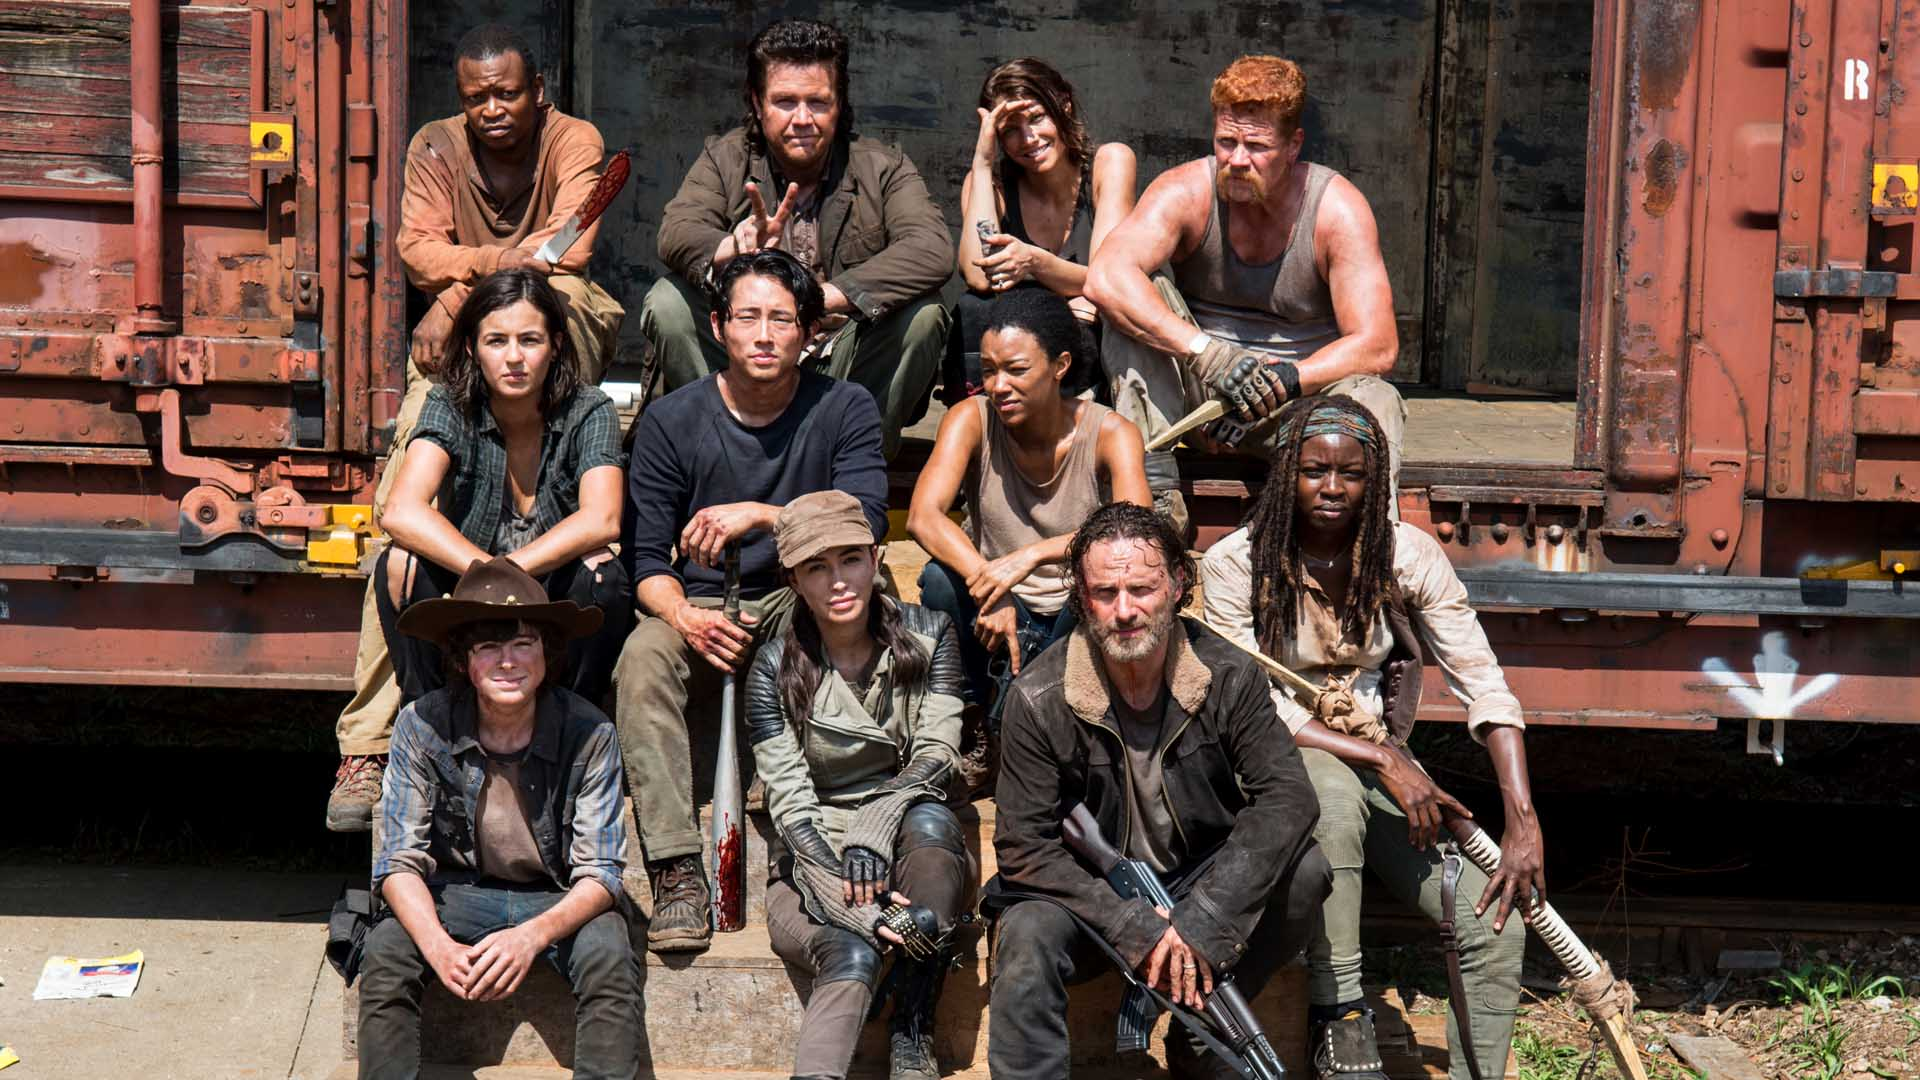 The Walking Dead cast at the start of season 7.